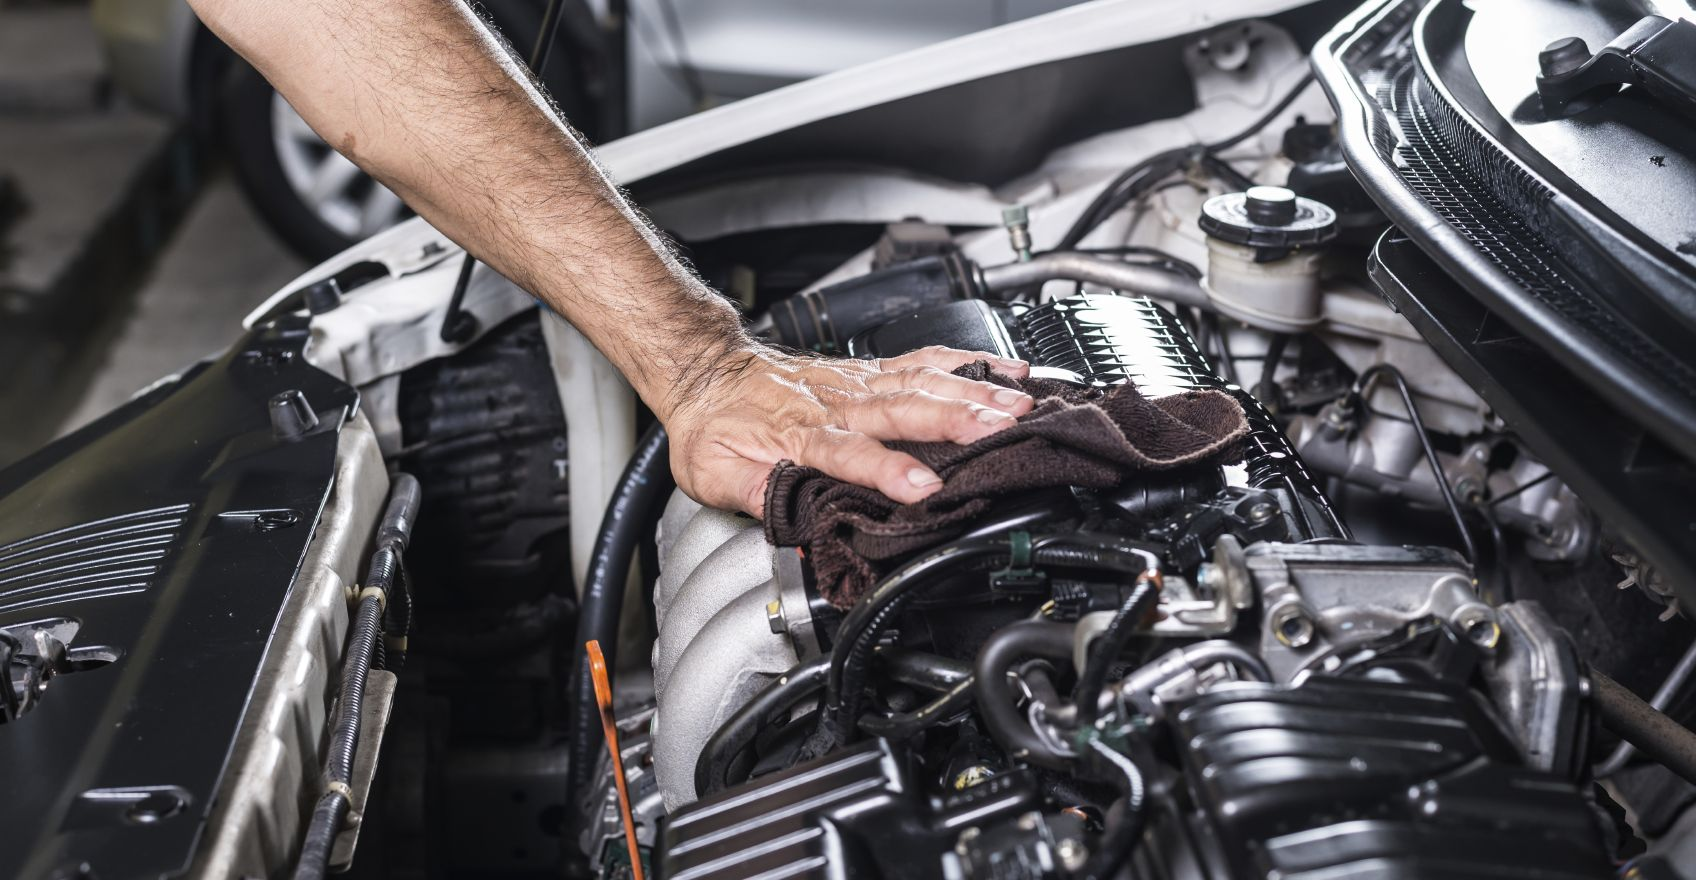 Why is Routine Maintenance Important?